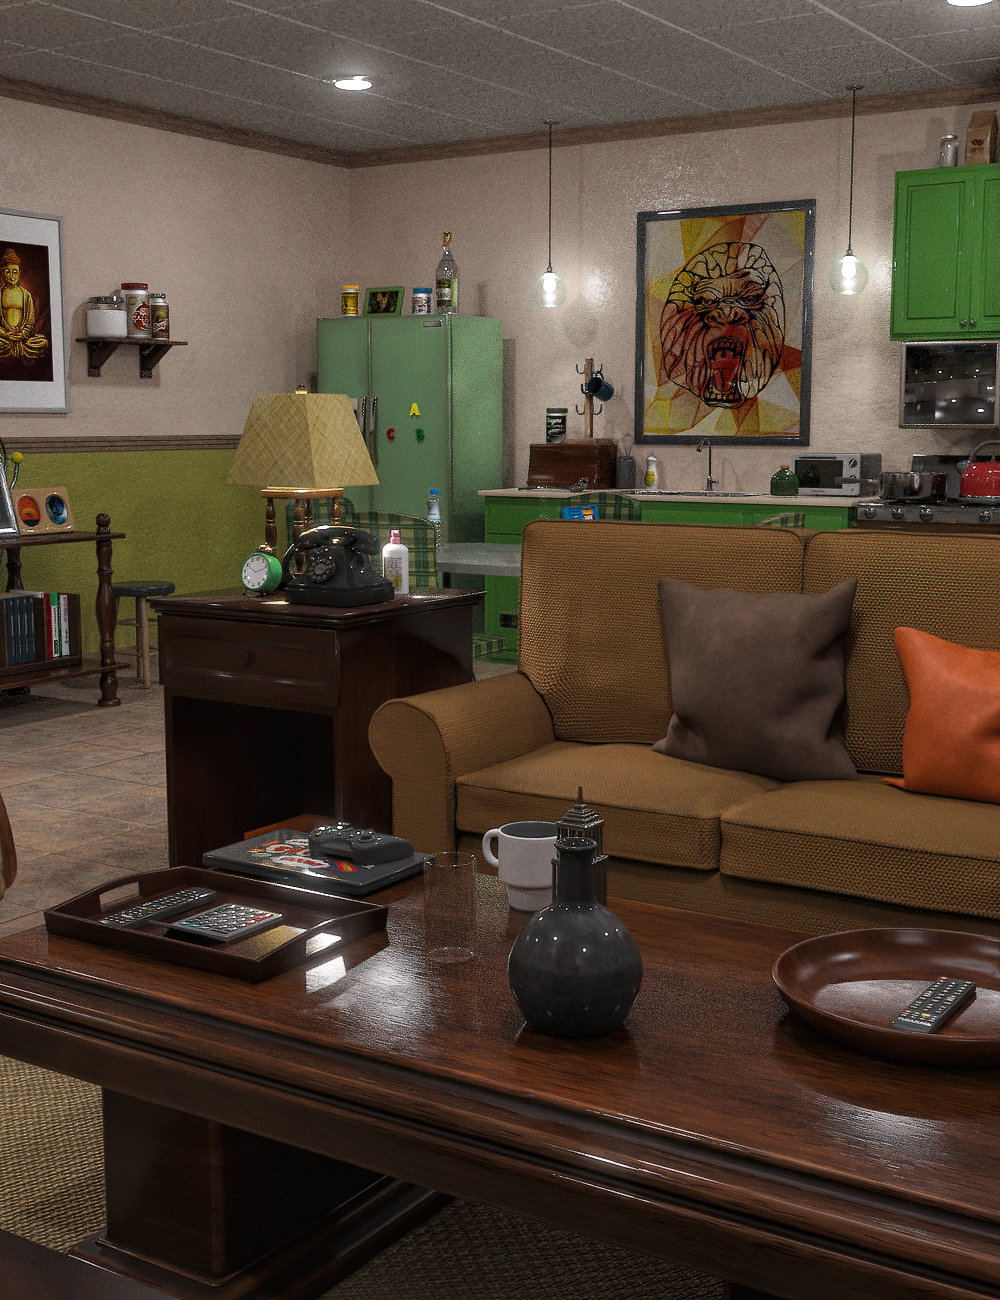 Messy Apartment Prop Add-On by: Fugazi1968Ironman, 3D Models by Daz 3D